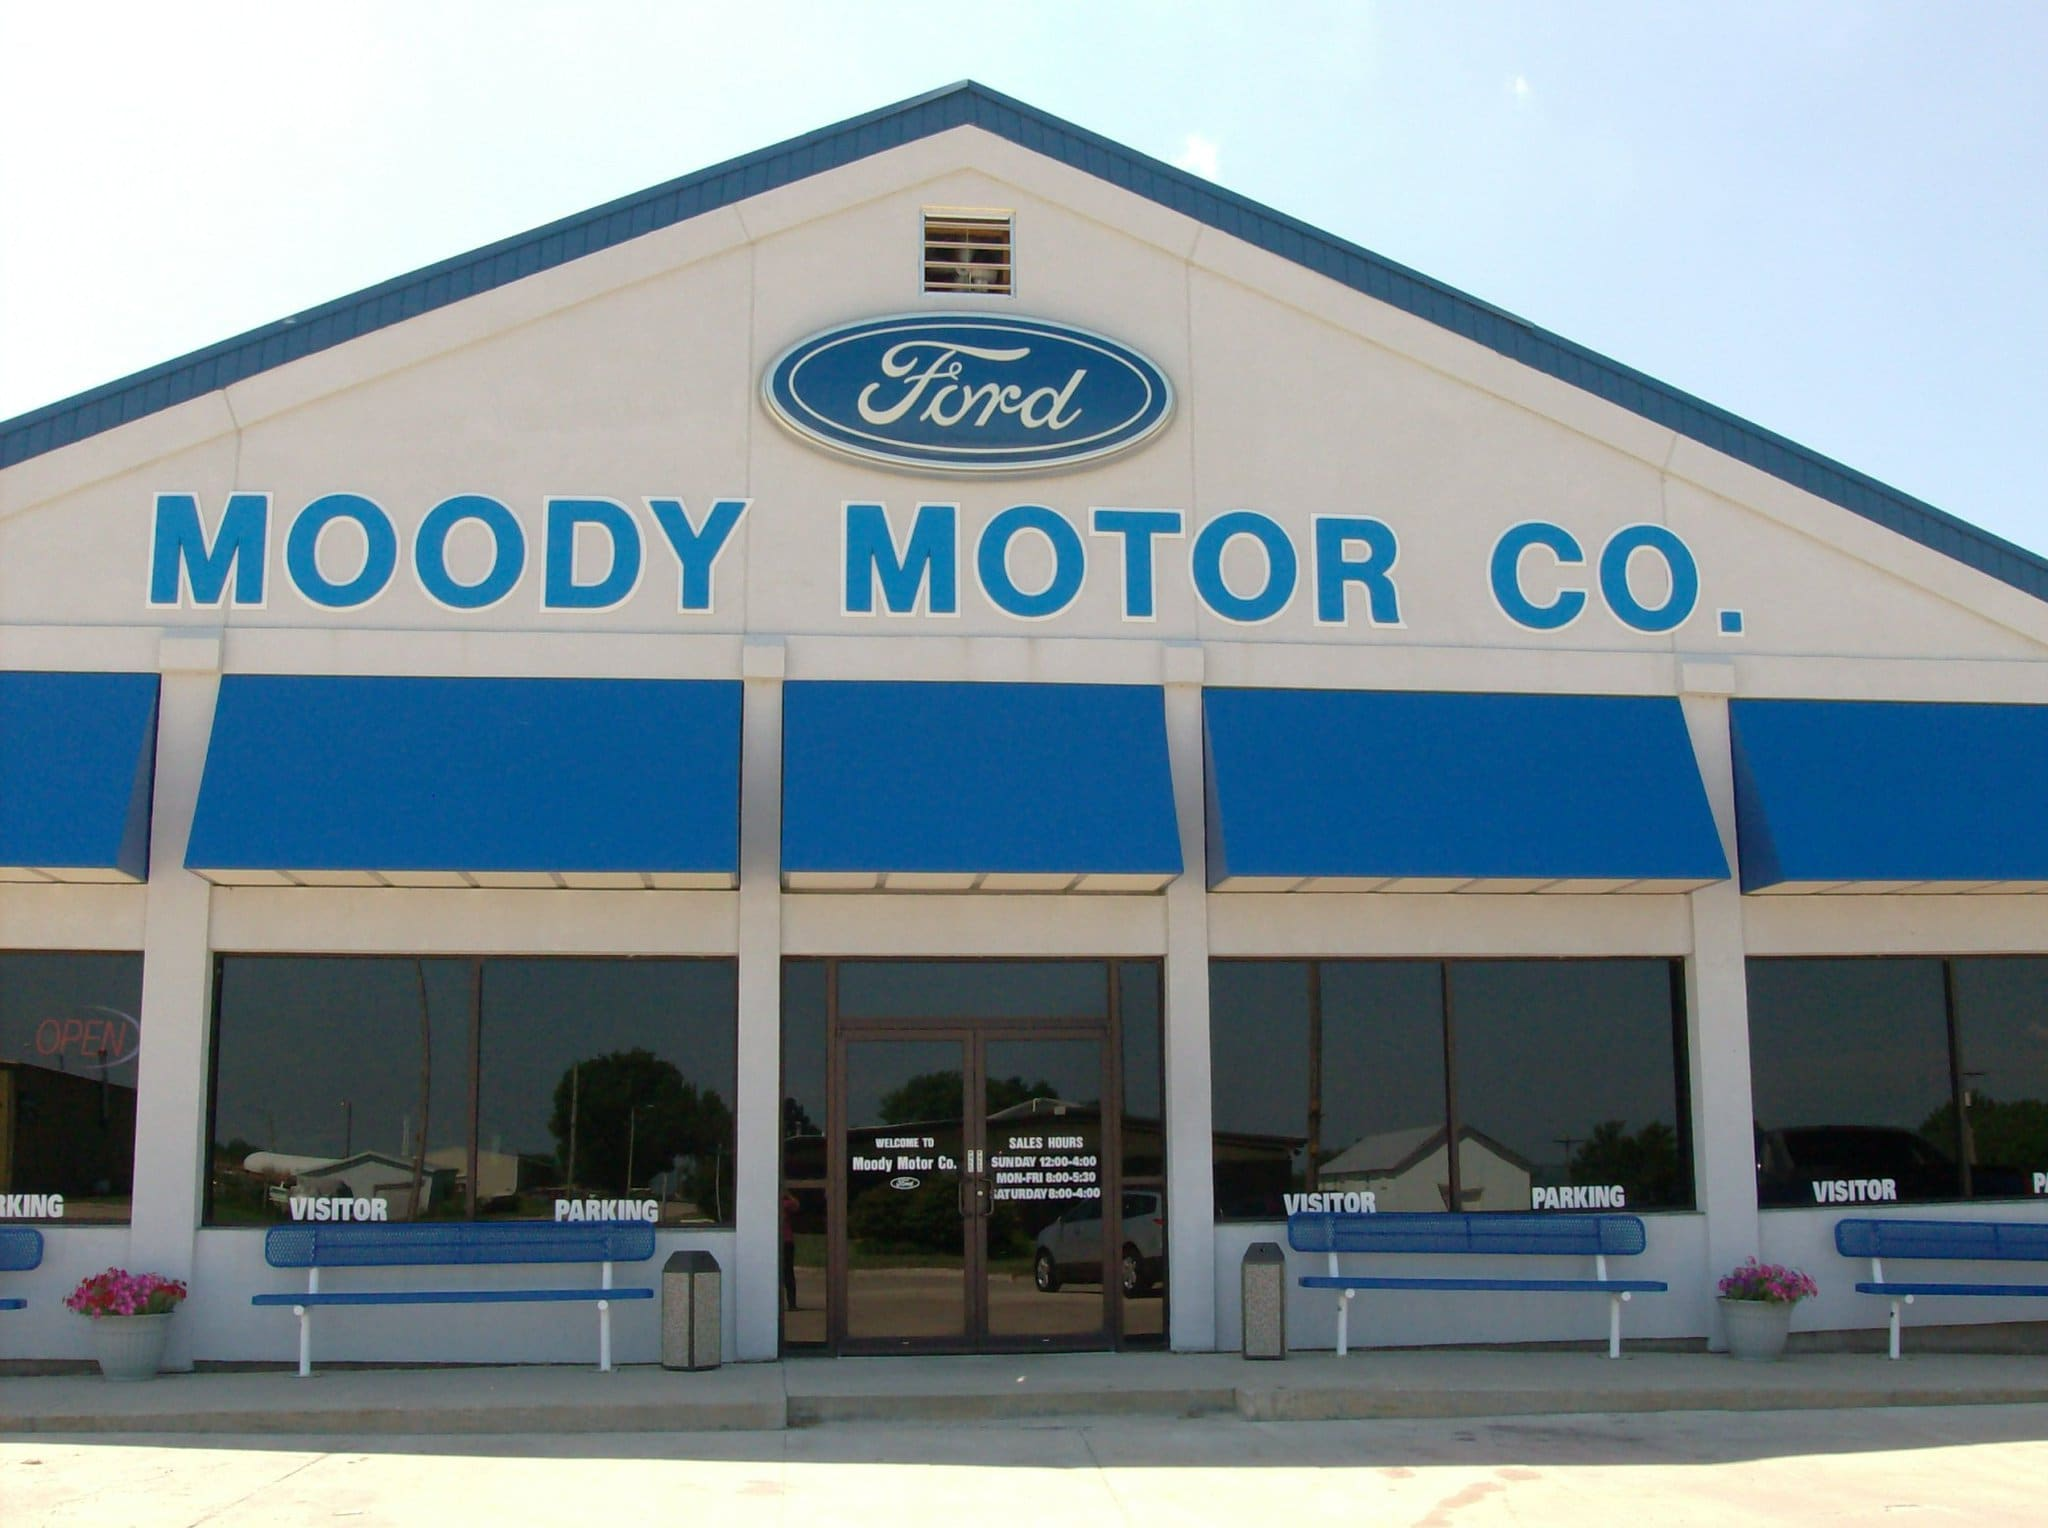 About moody motor a ford dealership in niobrara for Ford motor company payroll services